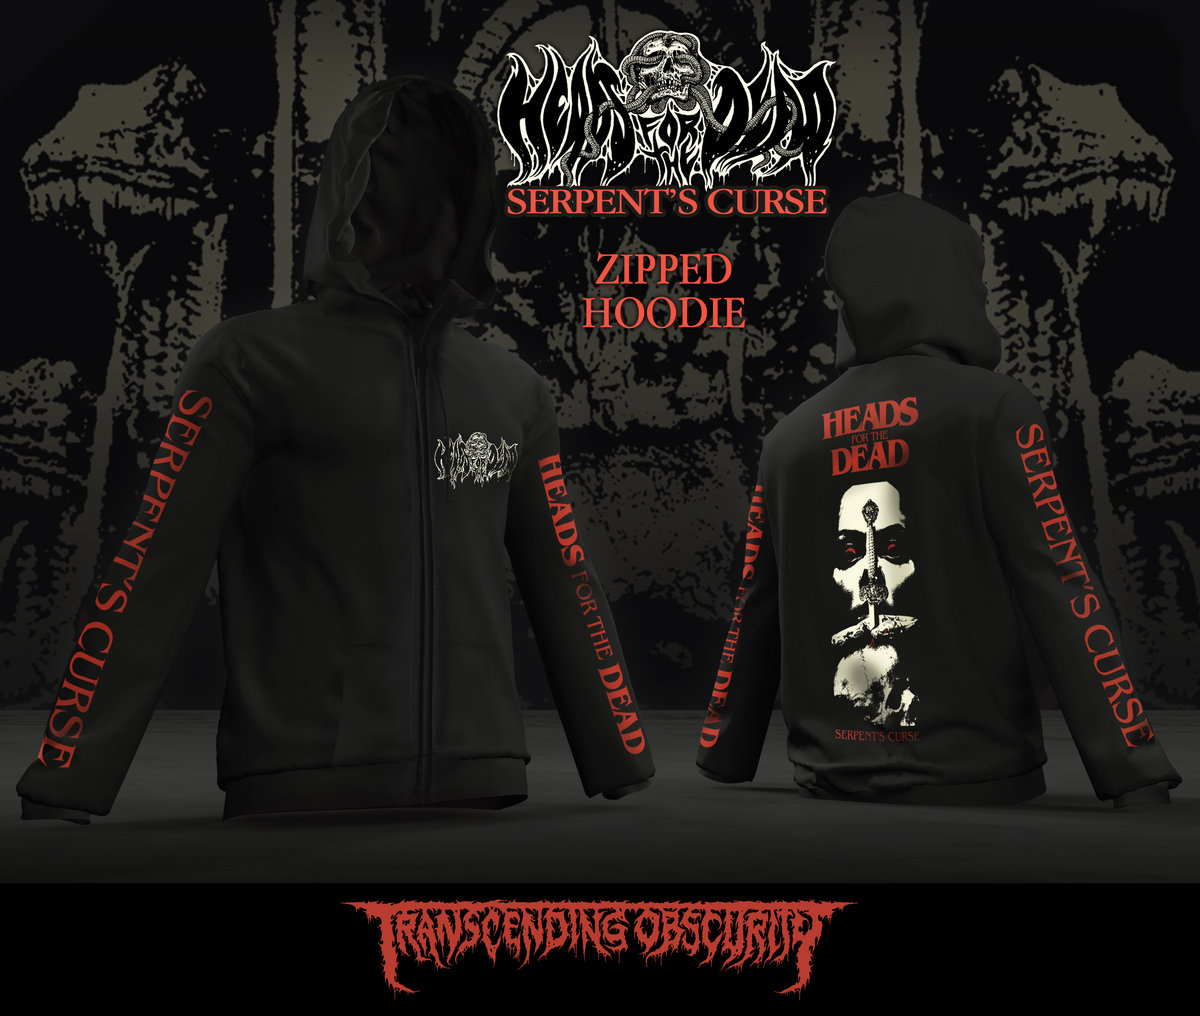 HEADS FOR THE DEAD Zipped Hoodie (Limited to 20)